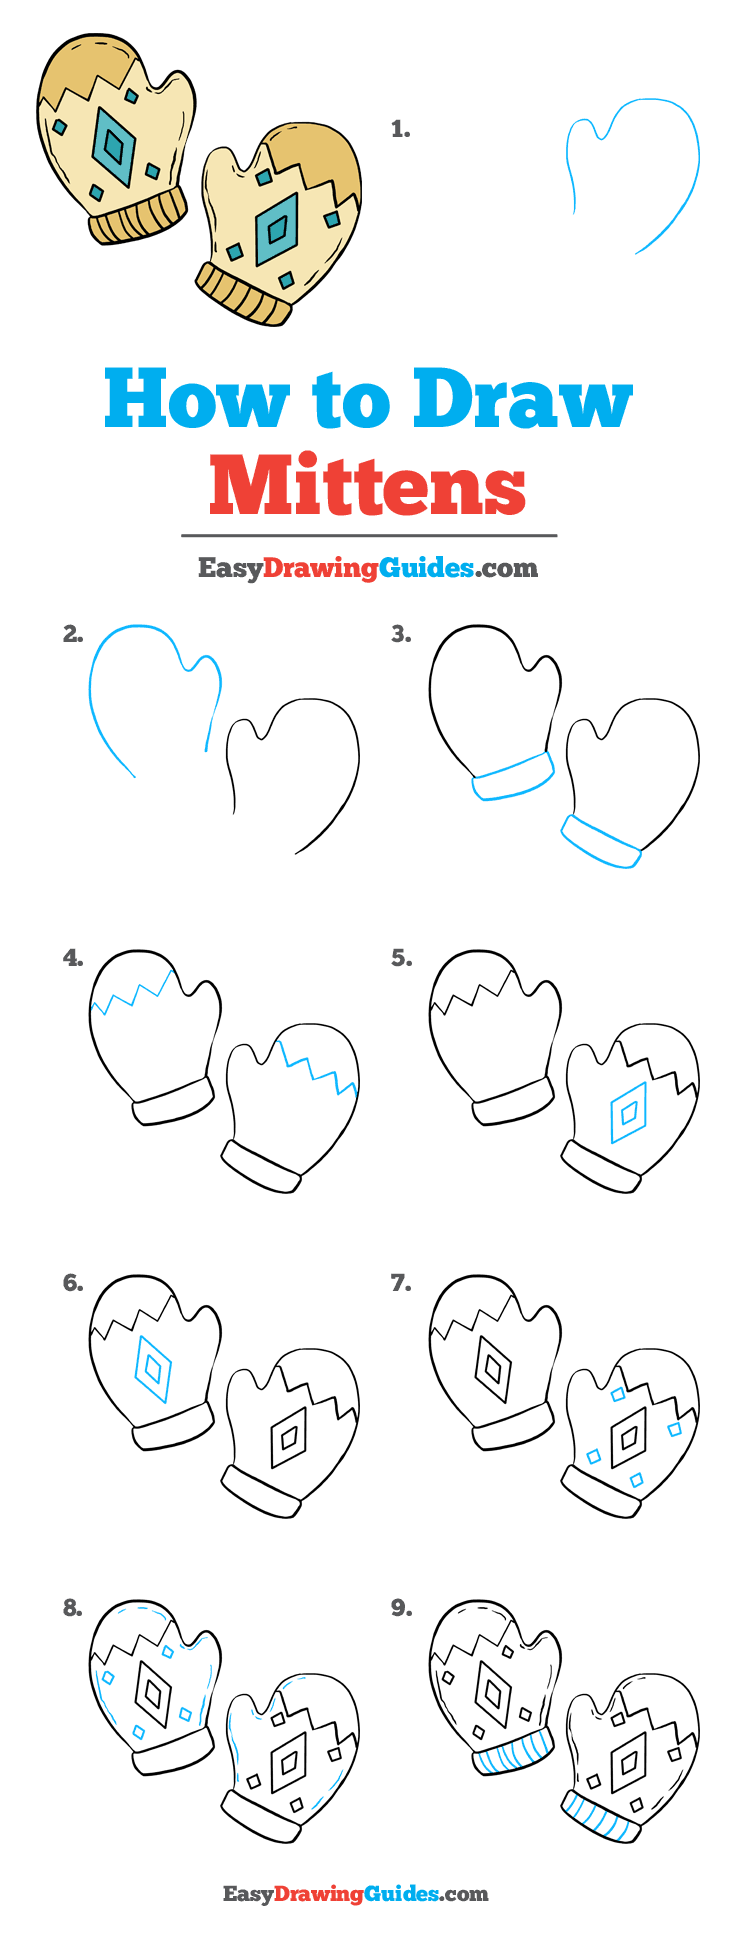 How to Draw Mittens Step by Step Tutorial Image